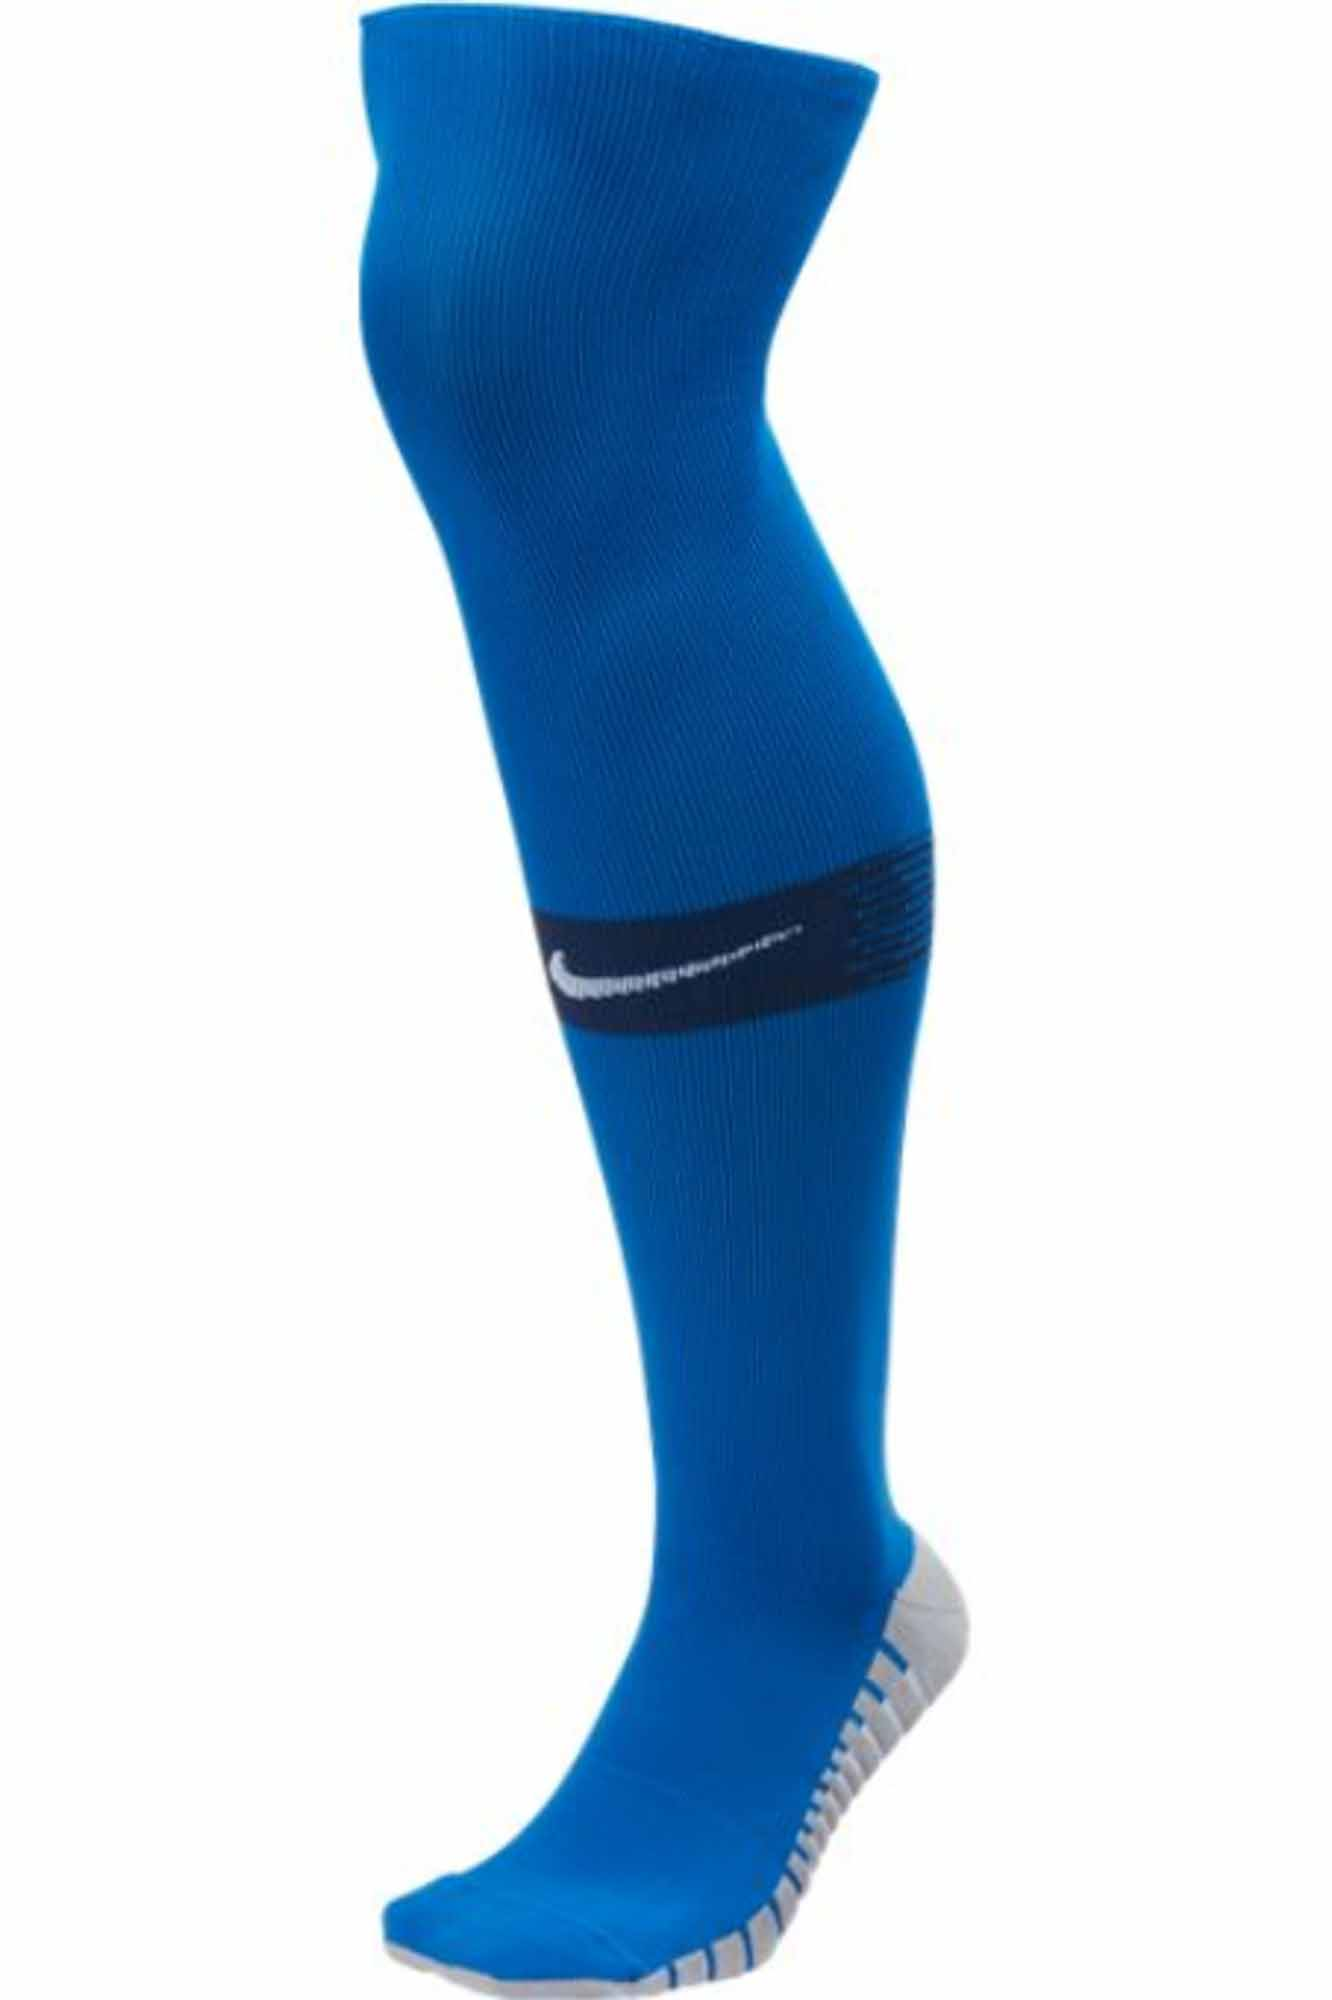 Nike Team Matchfit Soccer Socks - Royal Blue/Midnight Navy ...